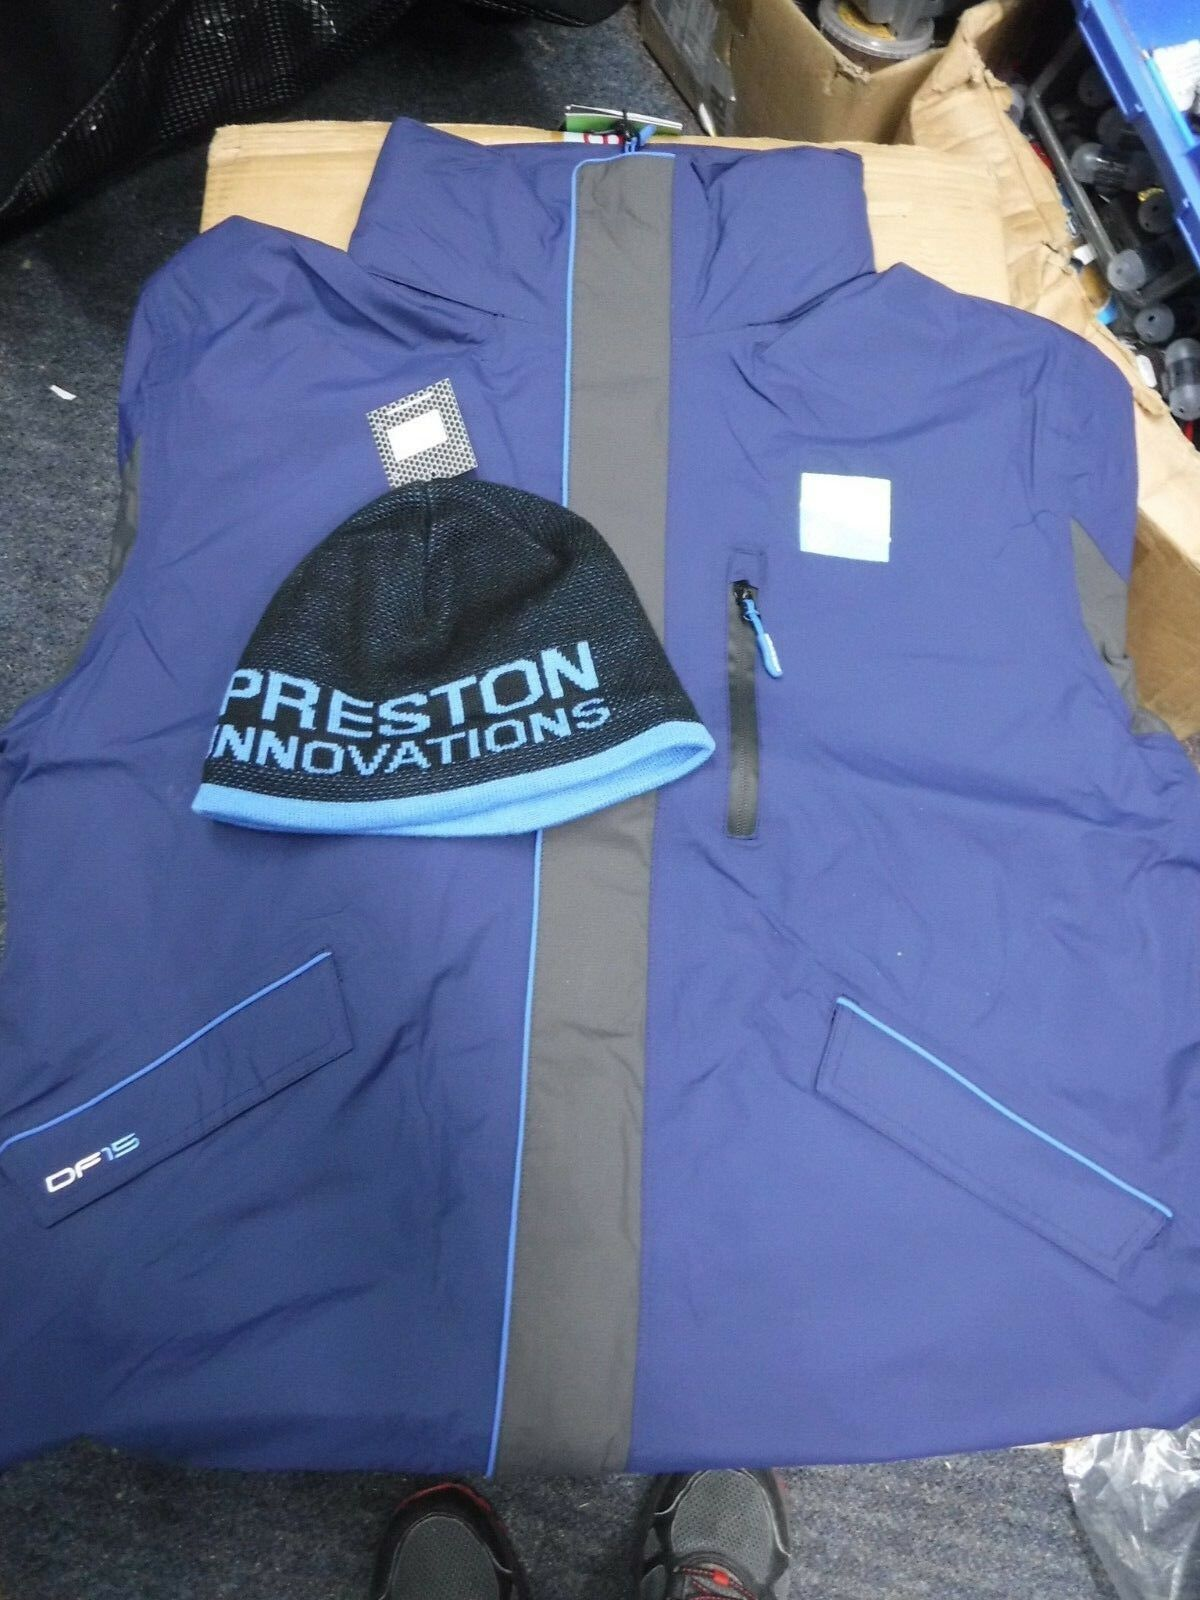 PRESTON INNOVATIONS  DF15 JACKET only free beanie hat  2019